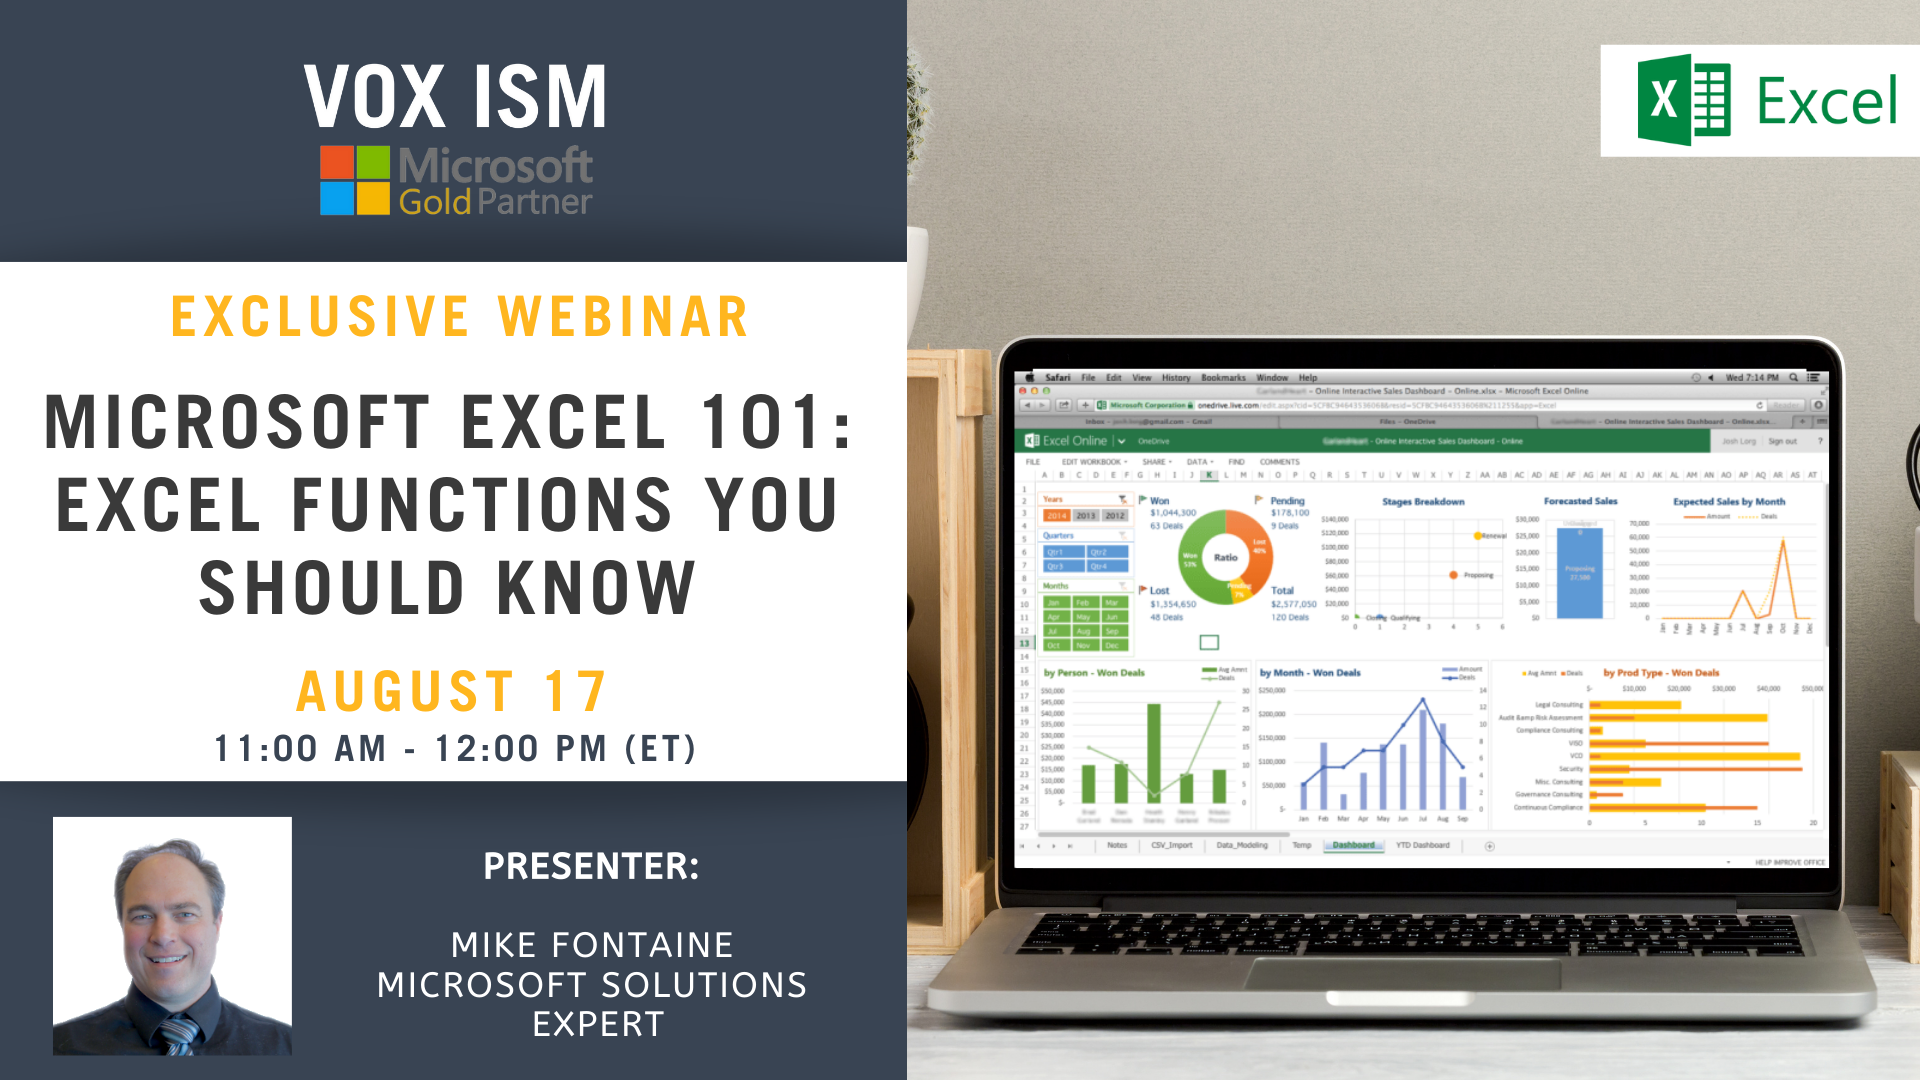 Microsoft Excel 101 - Excel Functions you should know - August 17 - Webinar